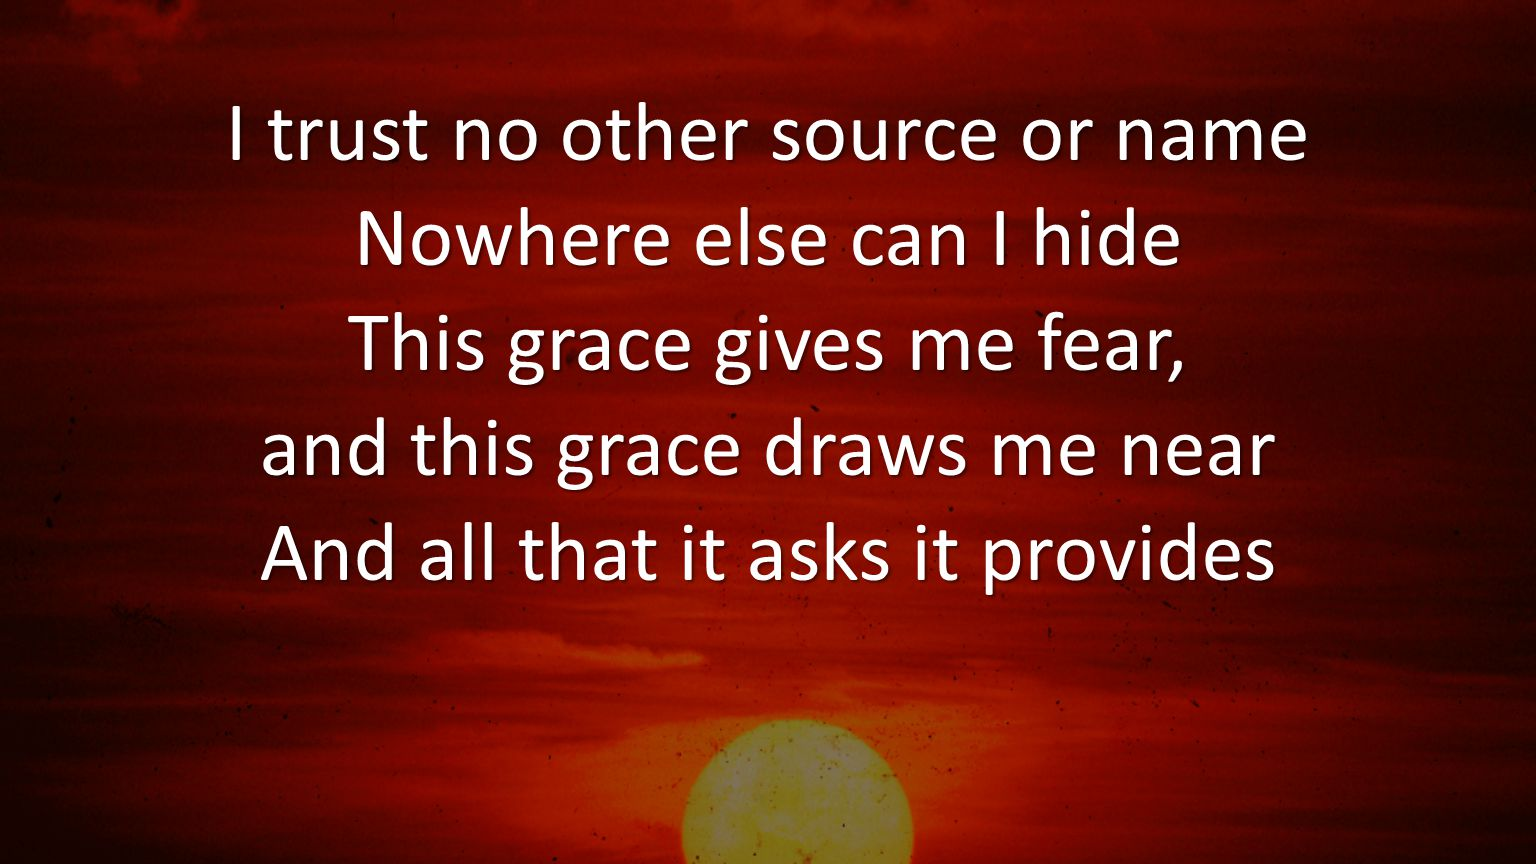 I trust no other source or name Nowhere else can I hide This grace gives me fear, and this grace draws me near And all that it asks it provides